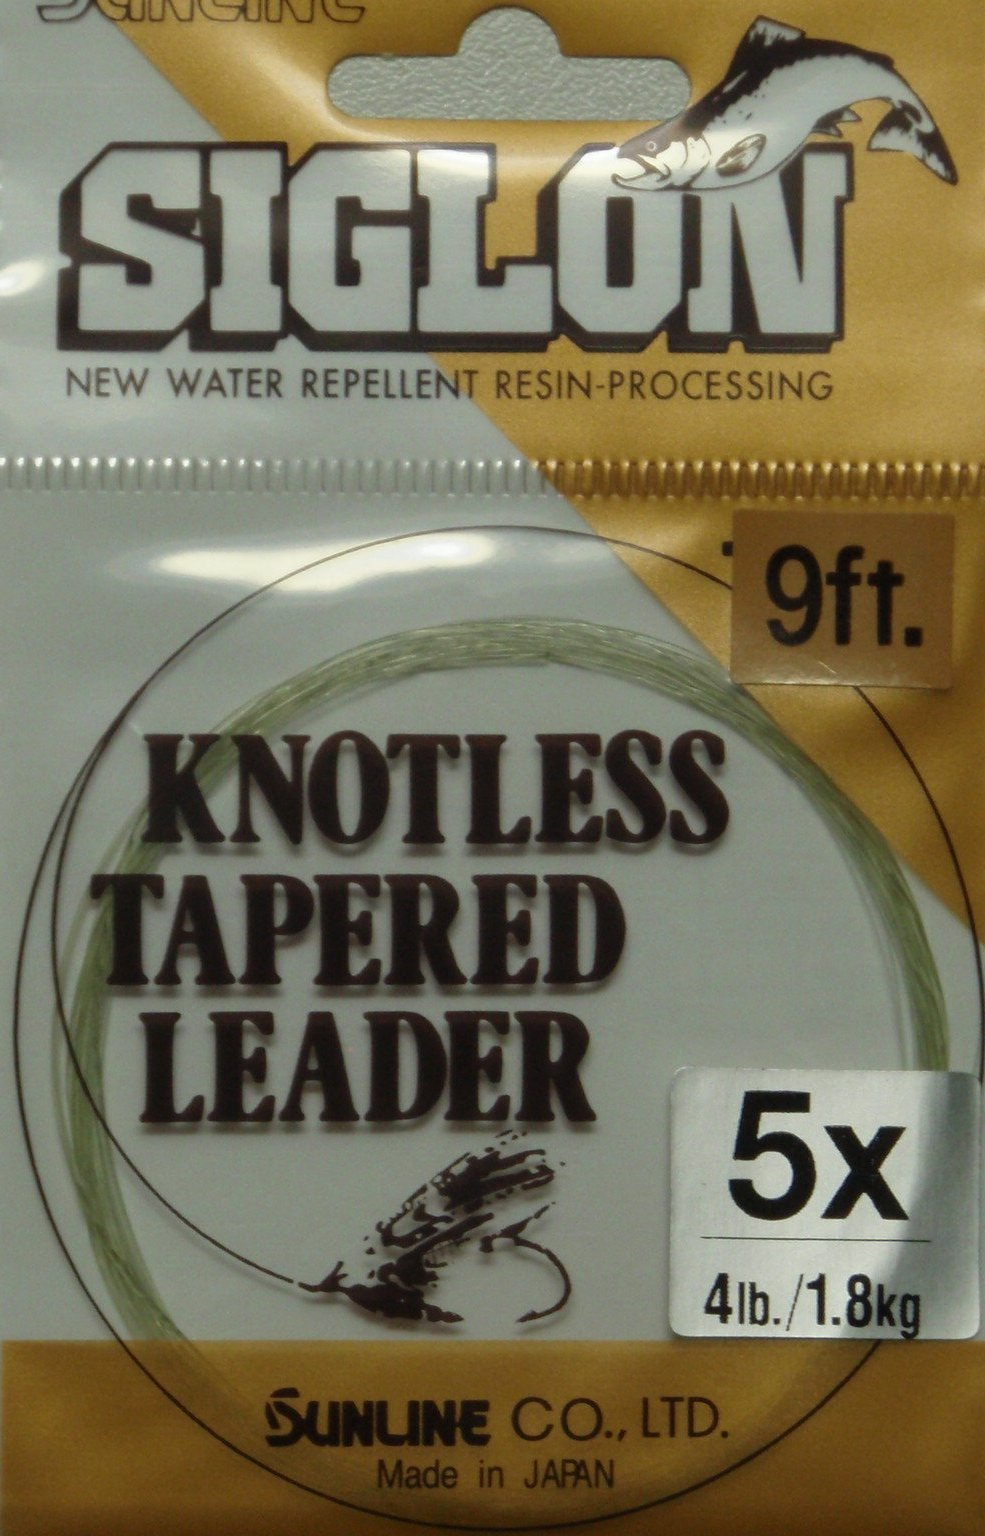 Siglon Knotless Tapered Leader 9 foot